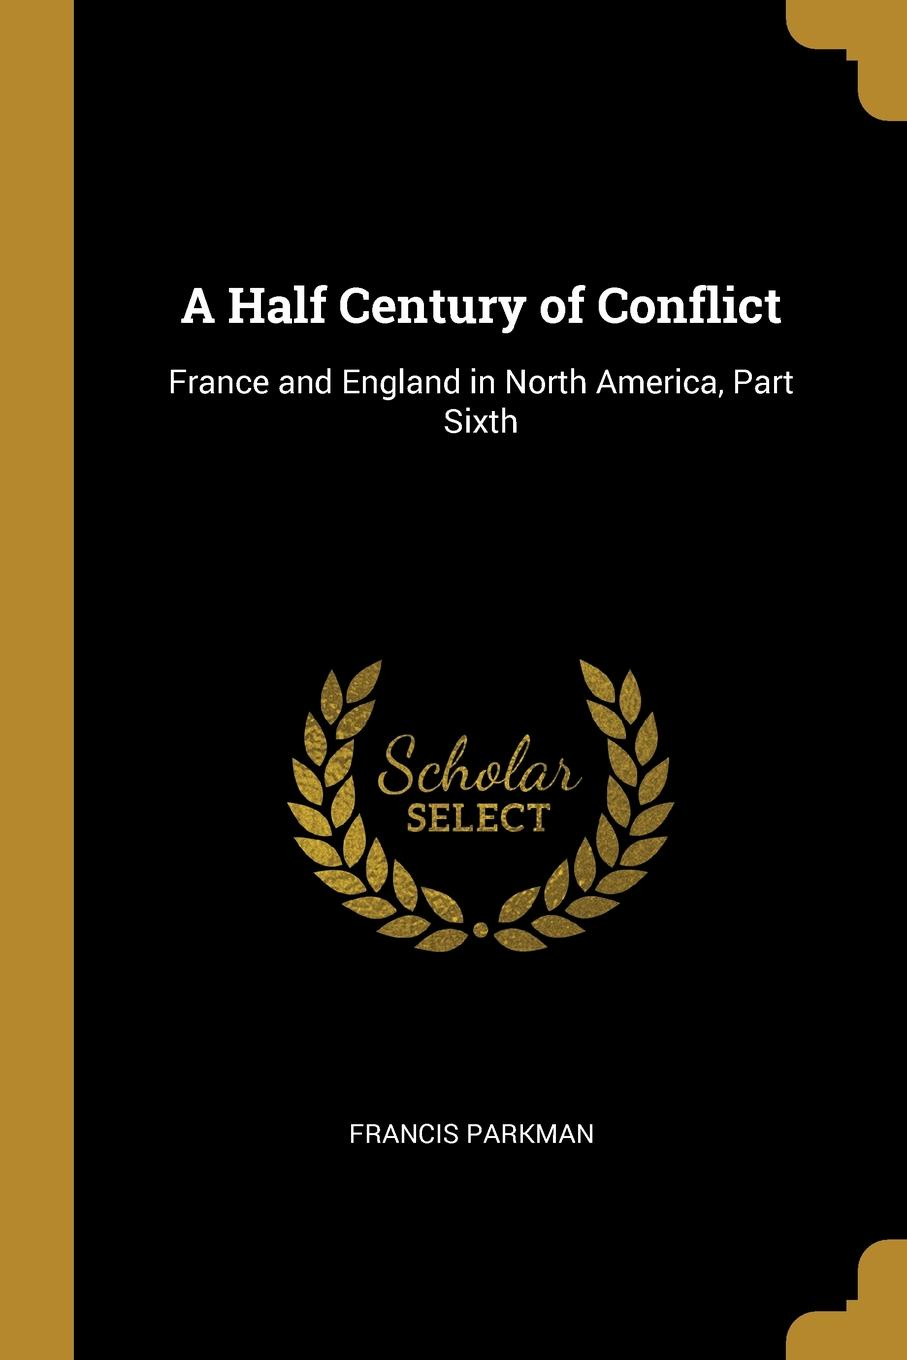 Francis Parkman A Half Century of Conflict. France and England in North America, Part Sixth